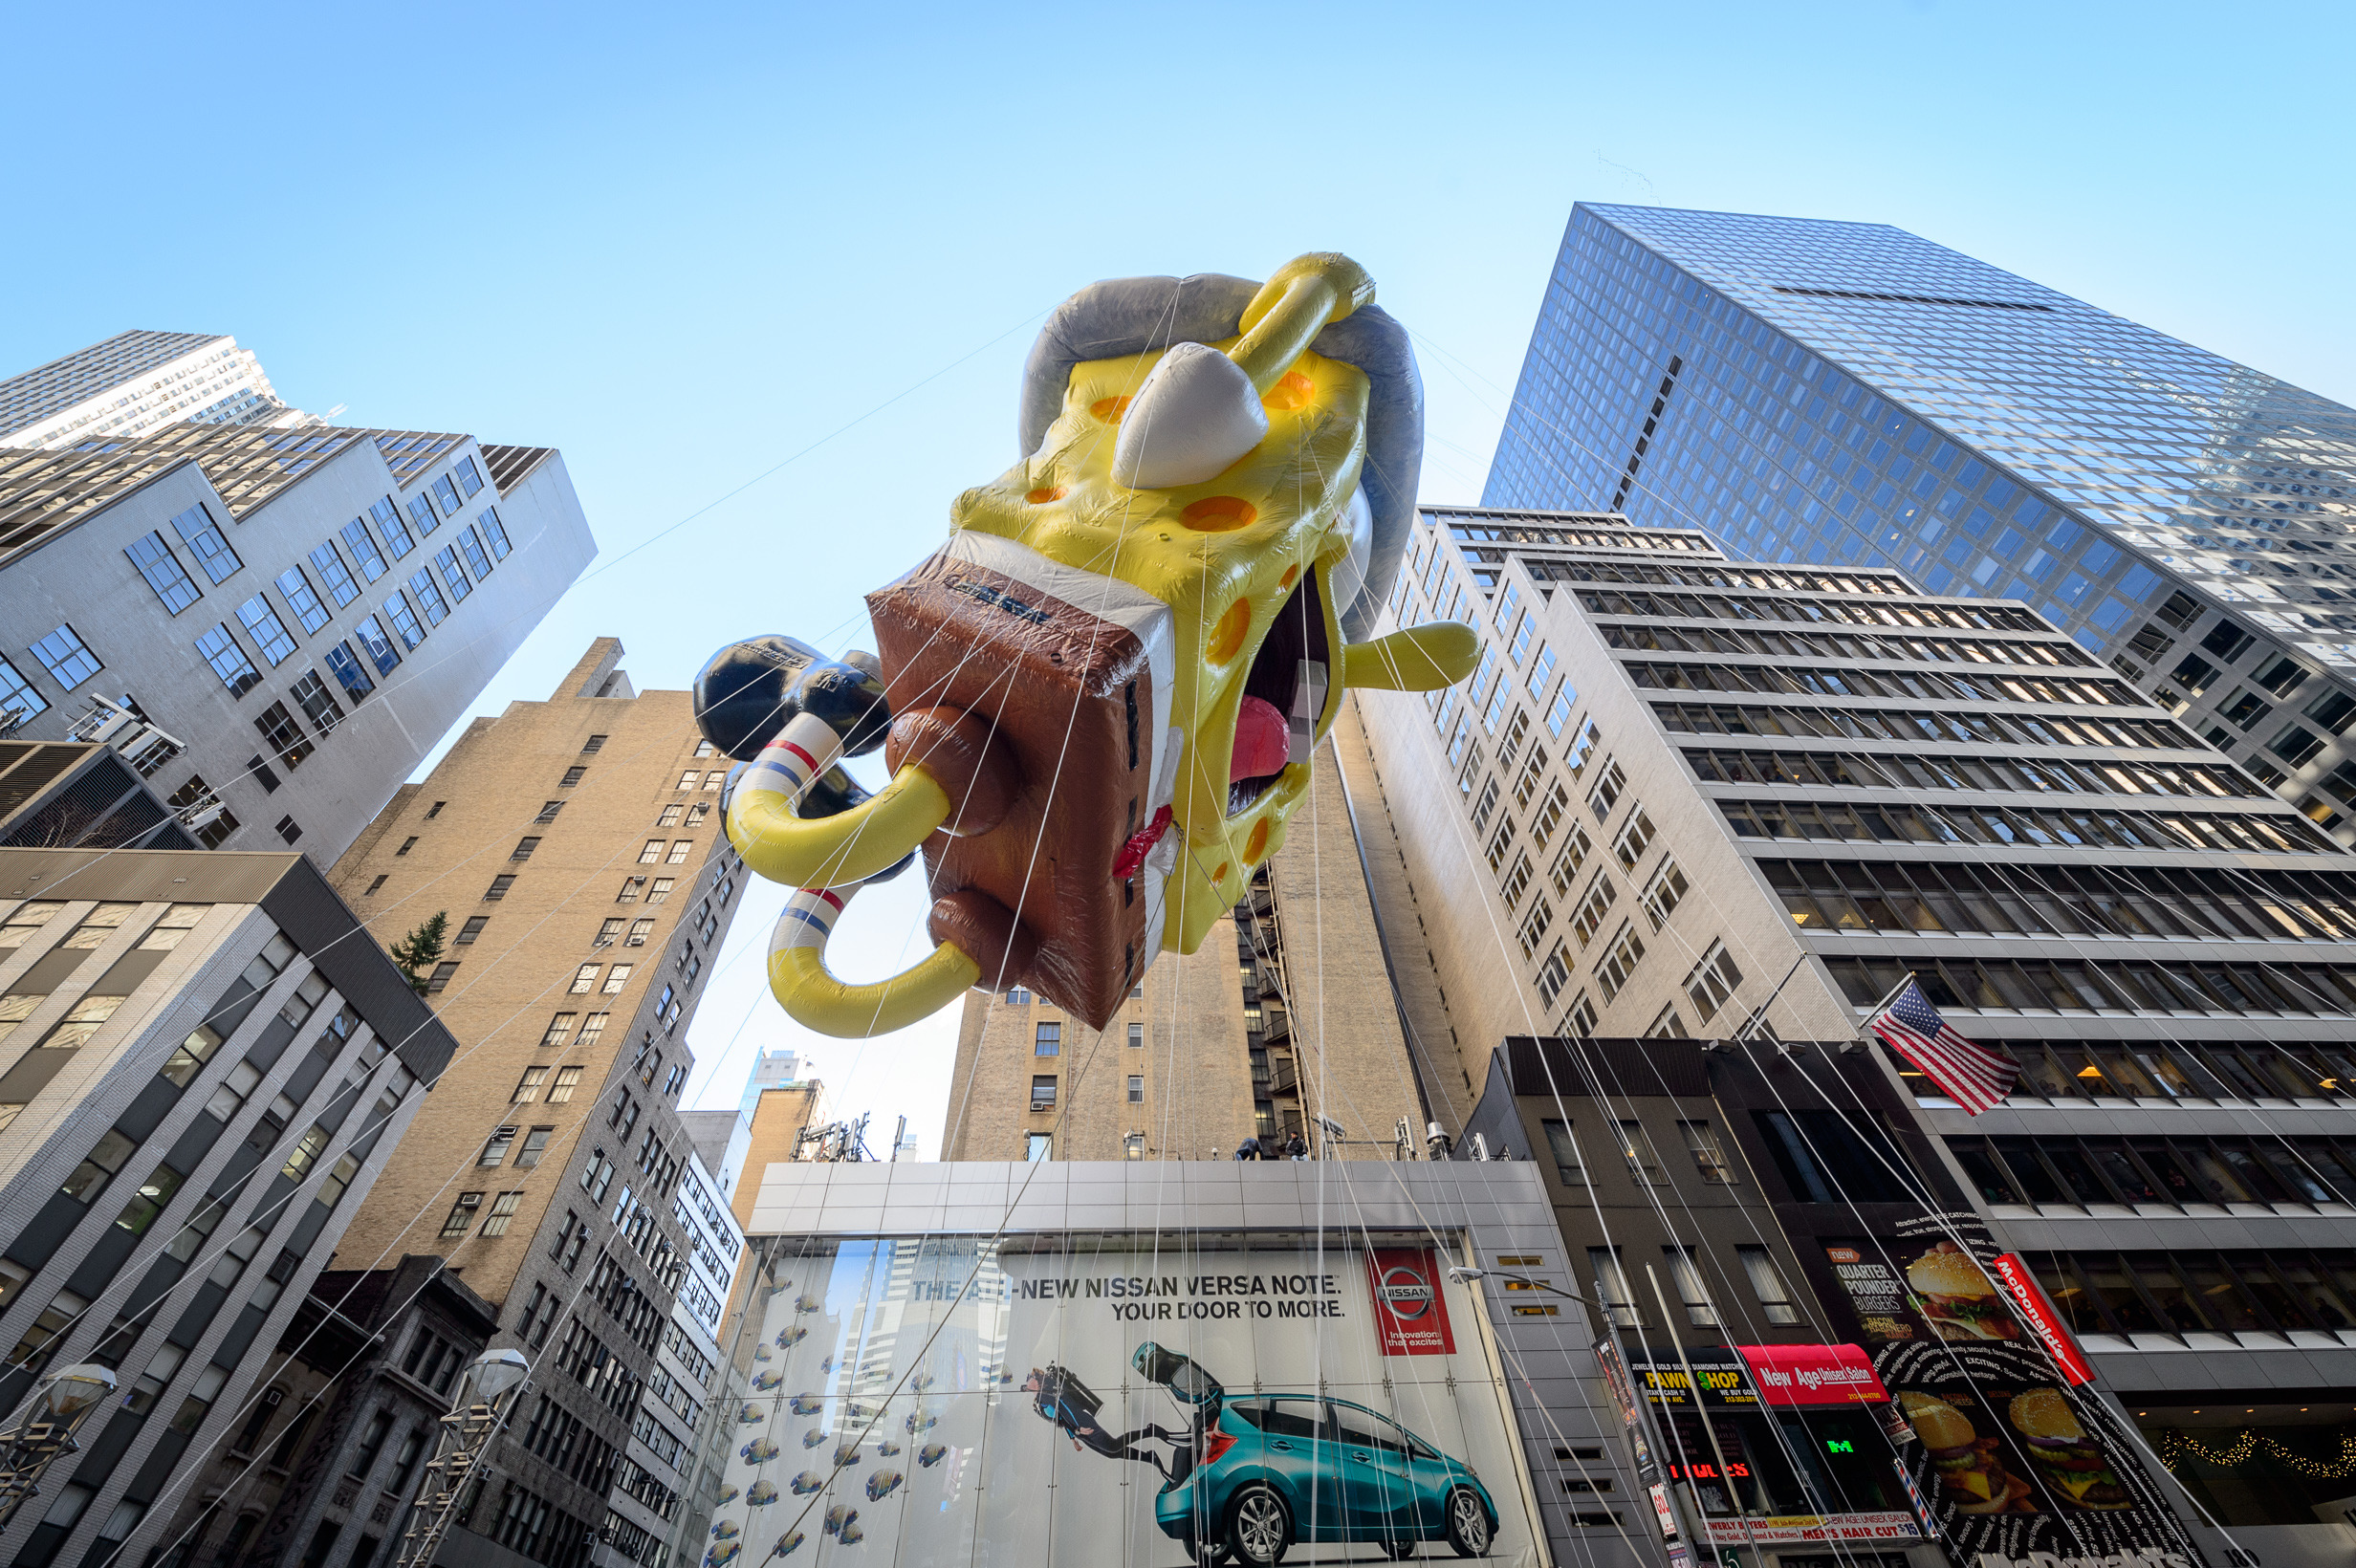 Photos: 2013 Macy's Thanksgiving Day Parade